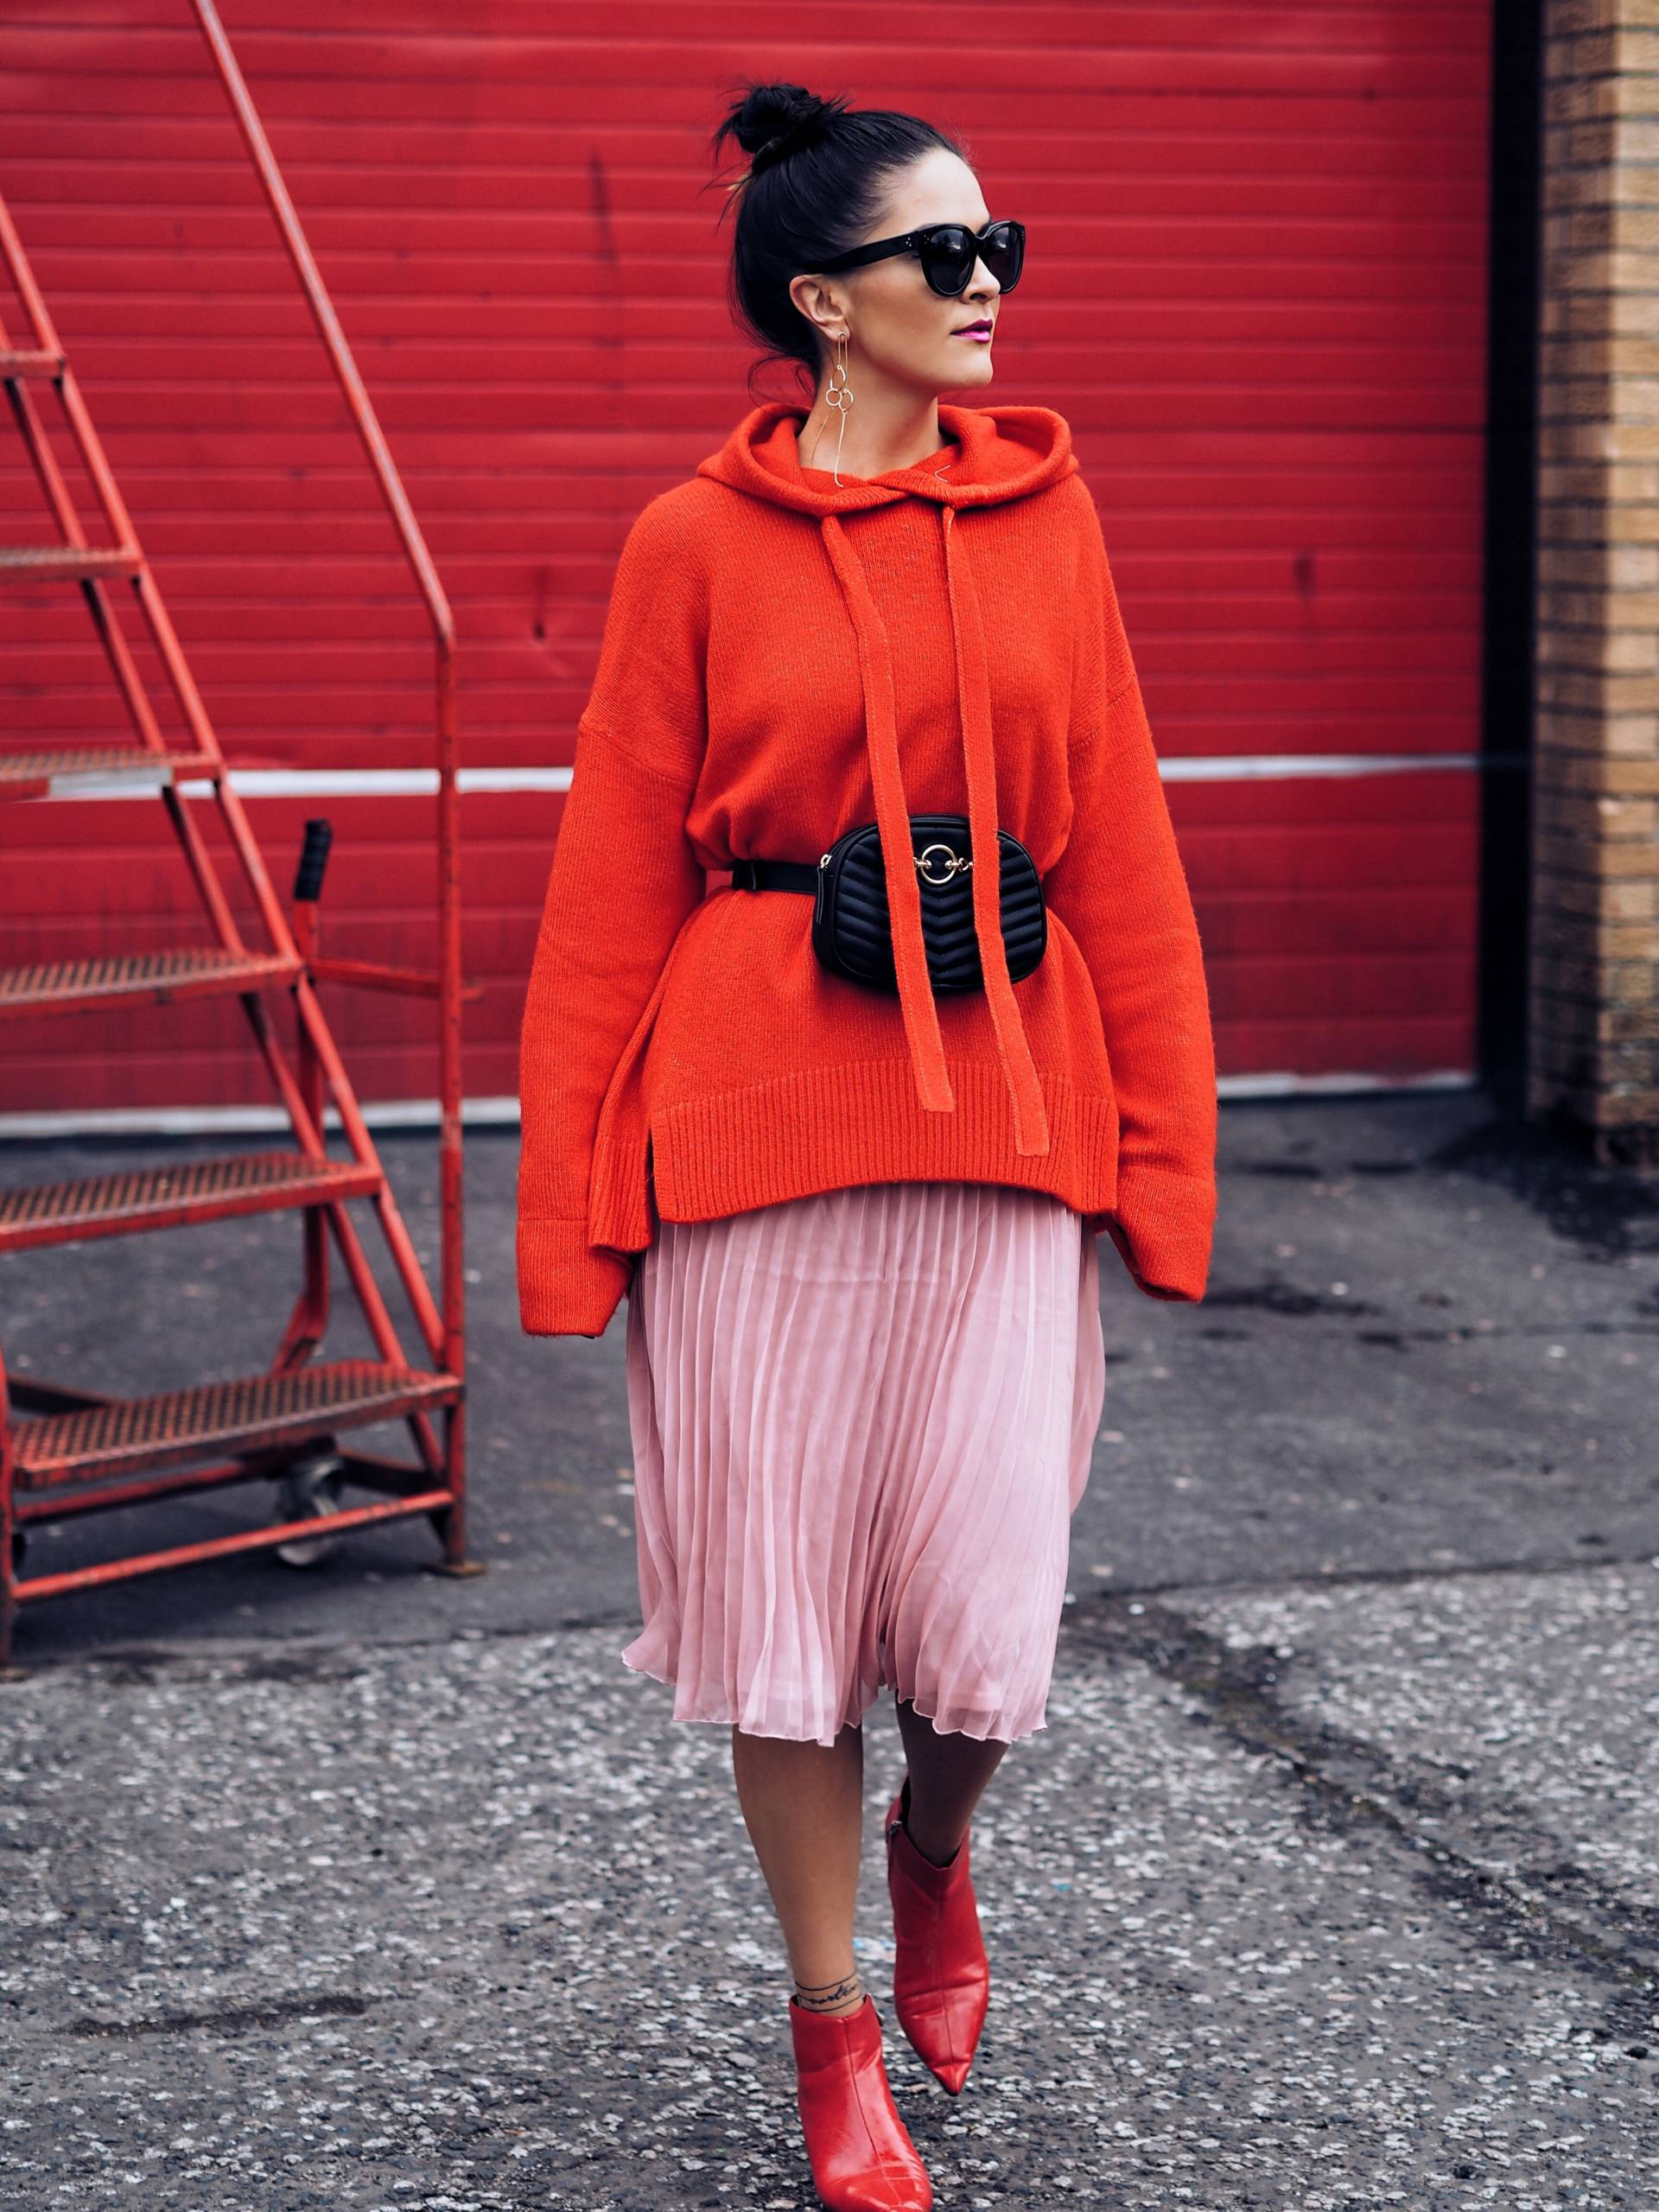 NYFW-RED-AND-PINK-TREND-STYLED-BY-UK-FASHION-BLOGGER-LAFOTKA-FOR-RADISSON-RED